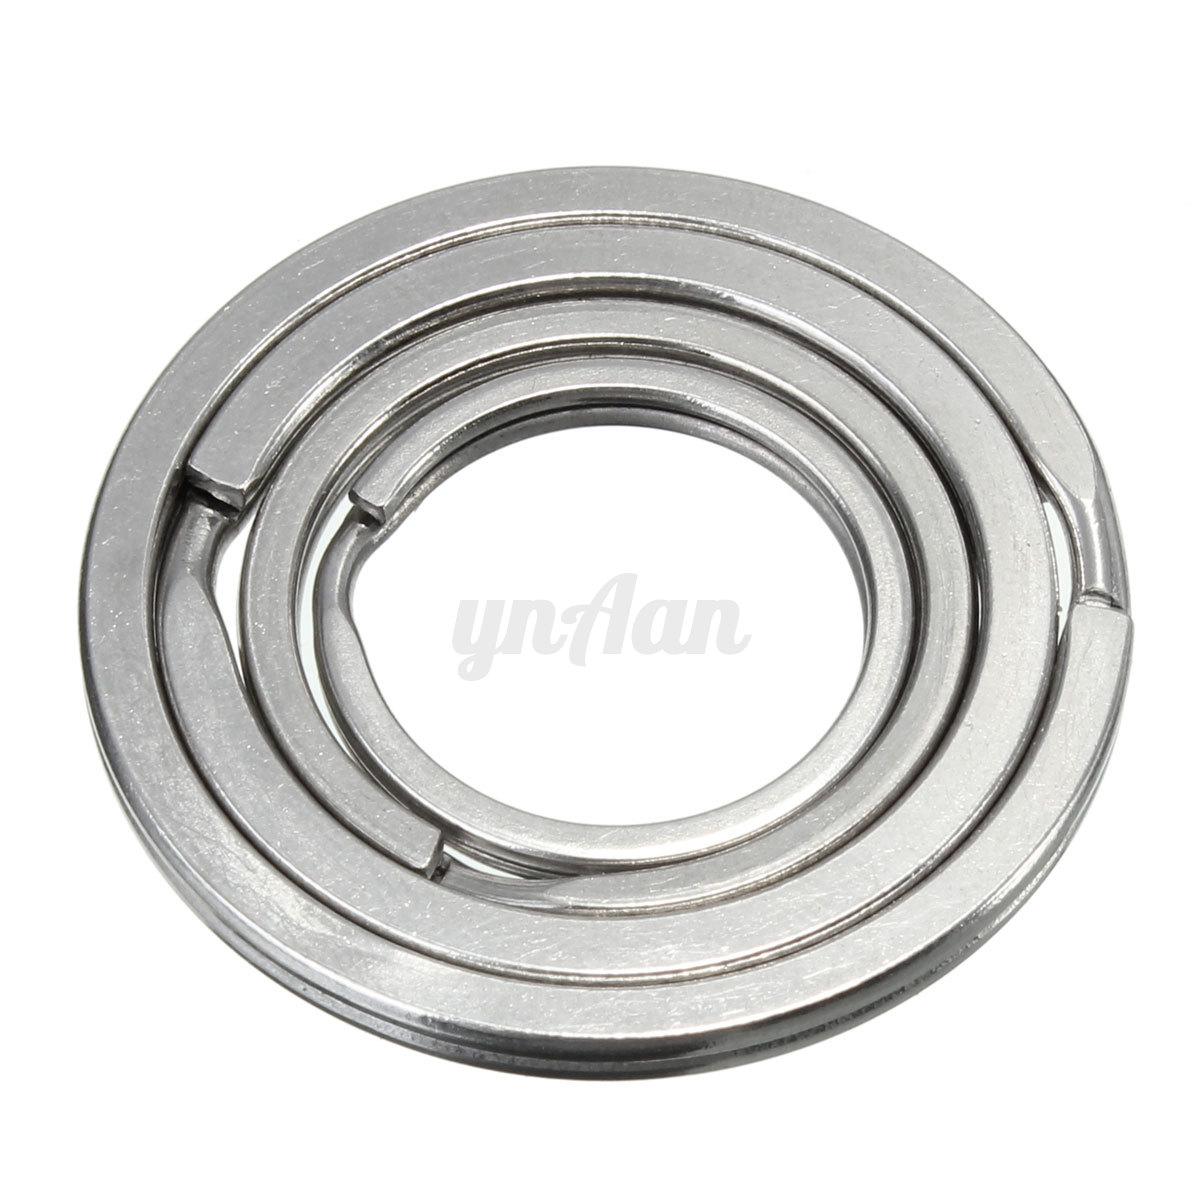 Ball Connector Split Chain Ring